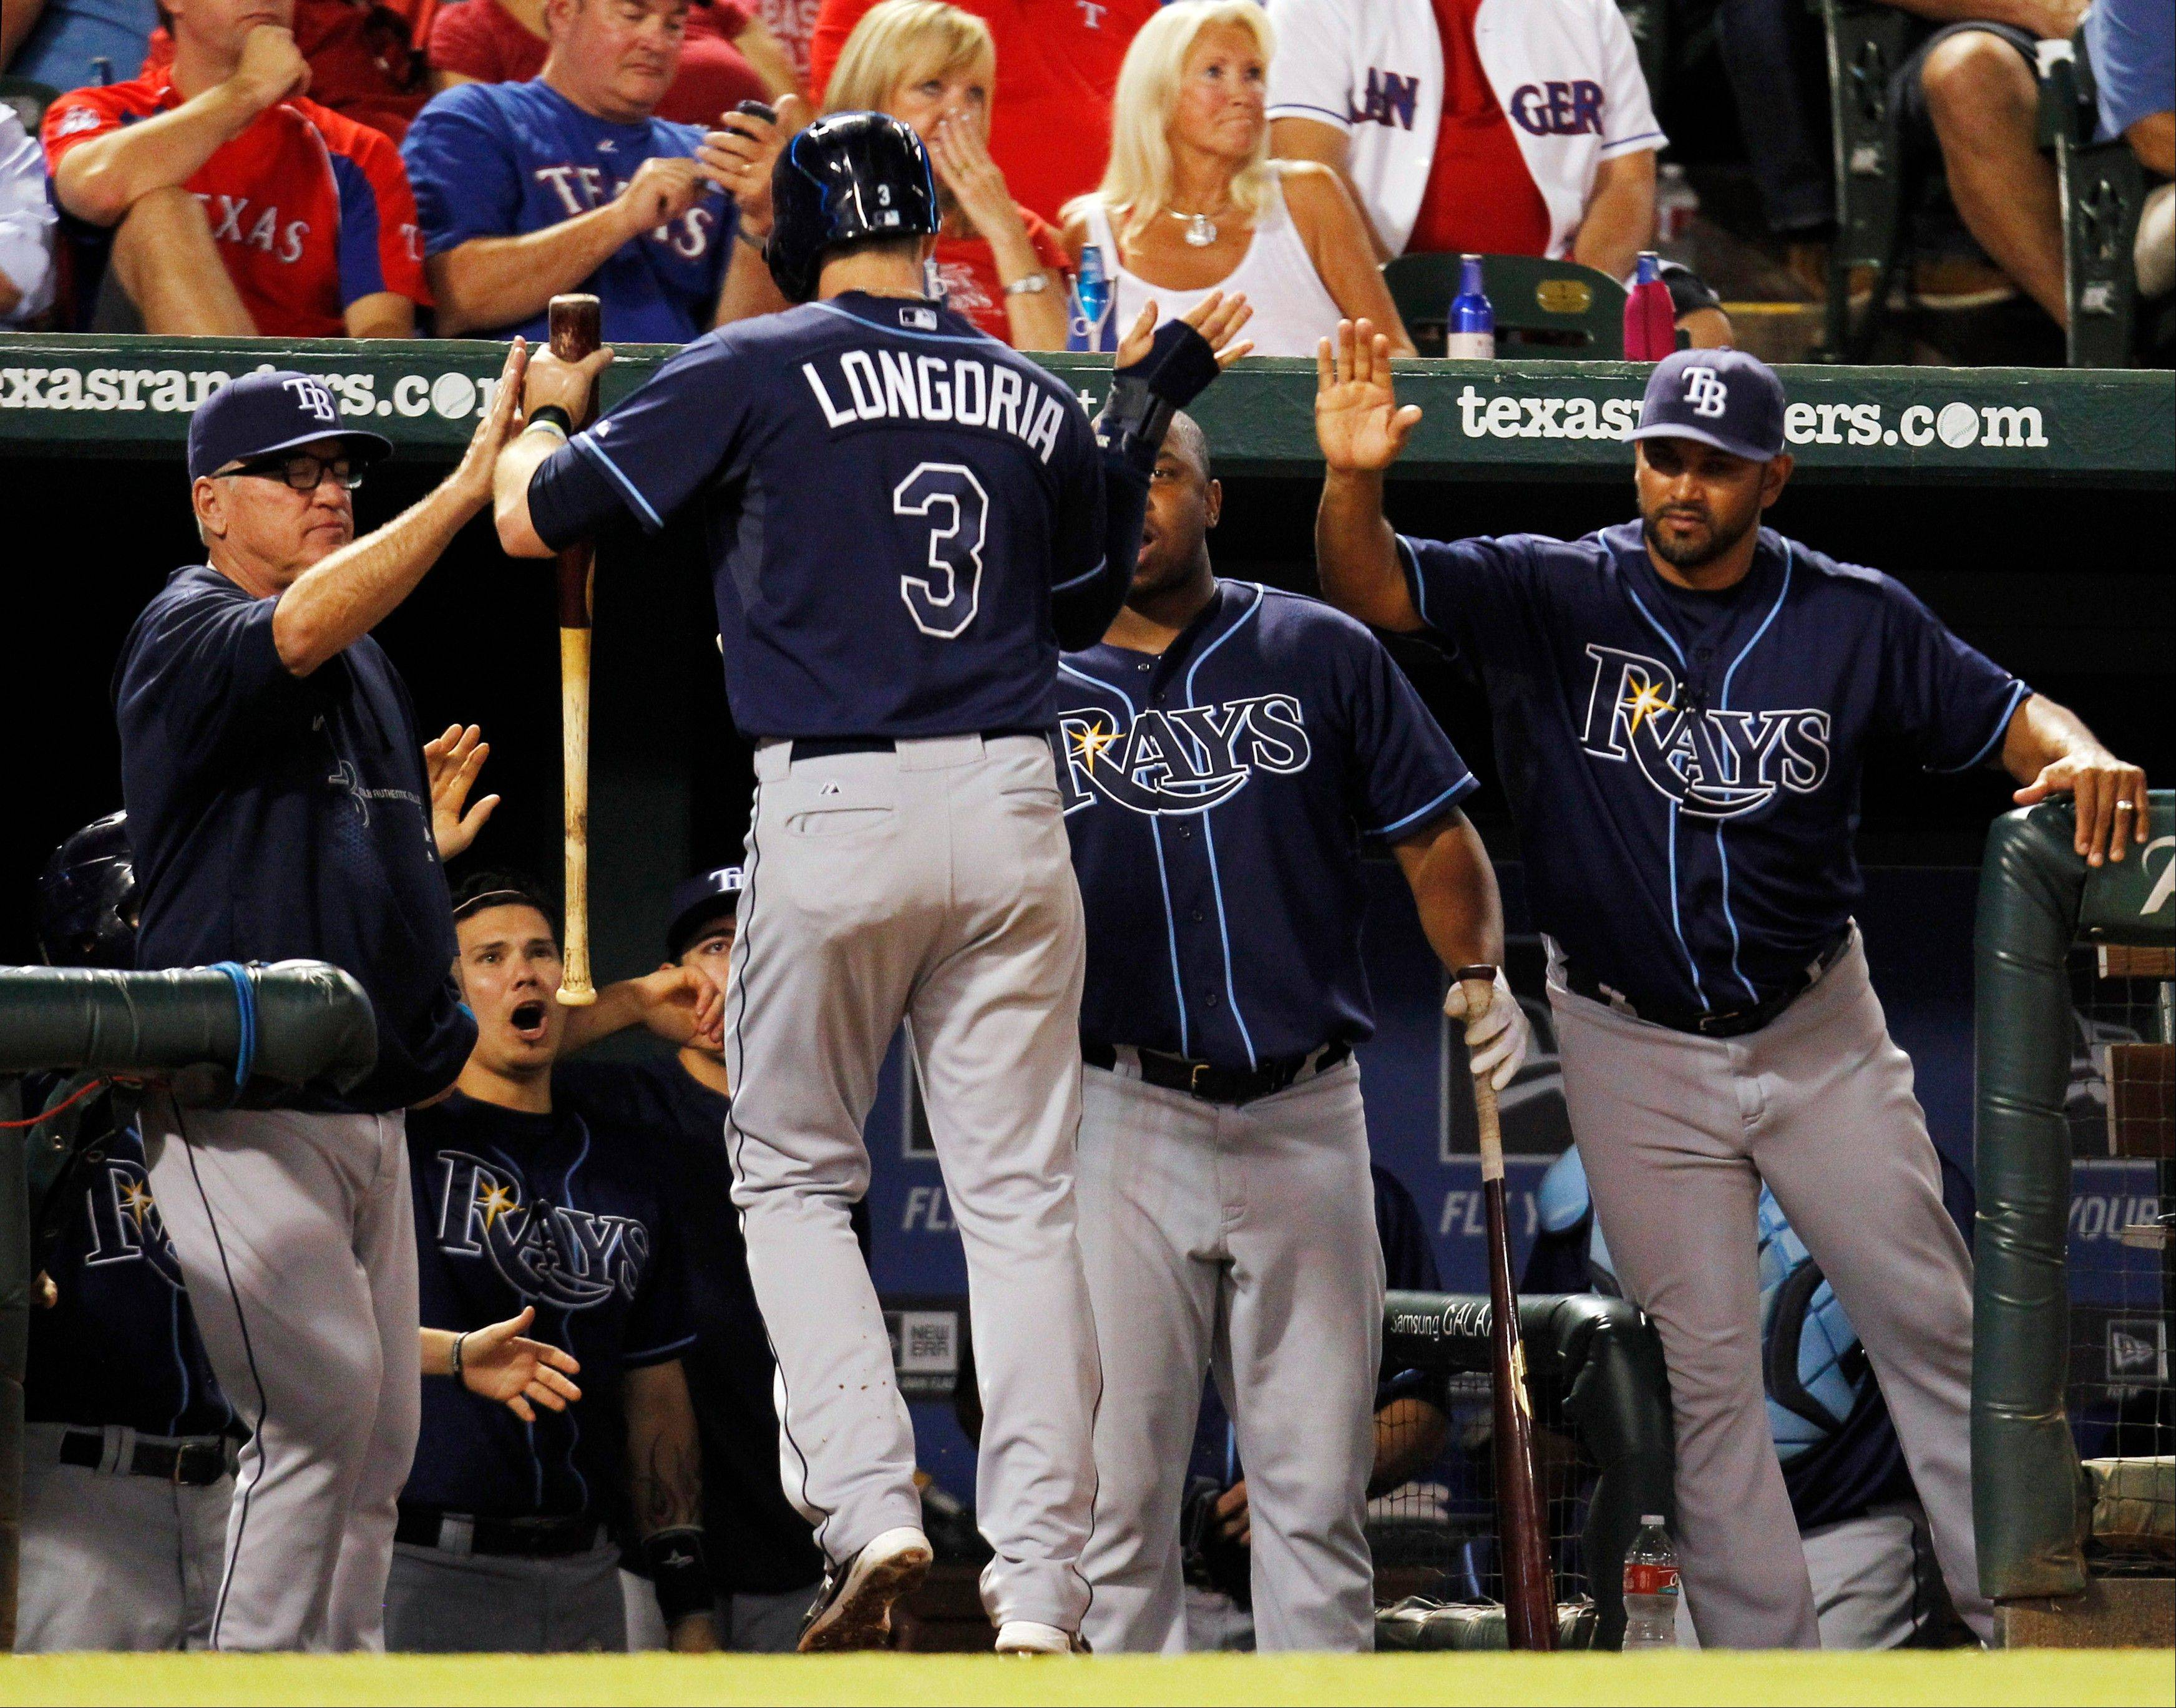 Tampa Bay's Evan Longoria celebrates after scoring on a double by David DeJesus during the sixth inning Monday against the Texas Rangers in Arlington, Texas.